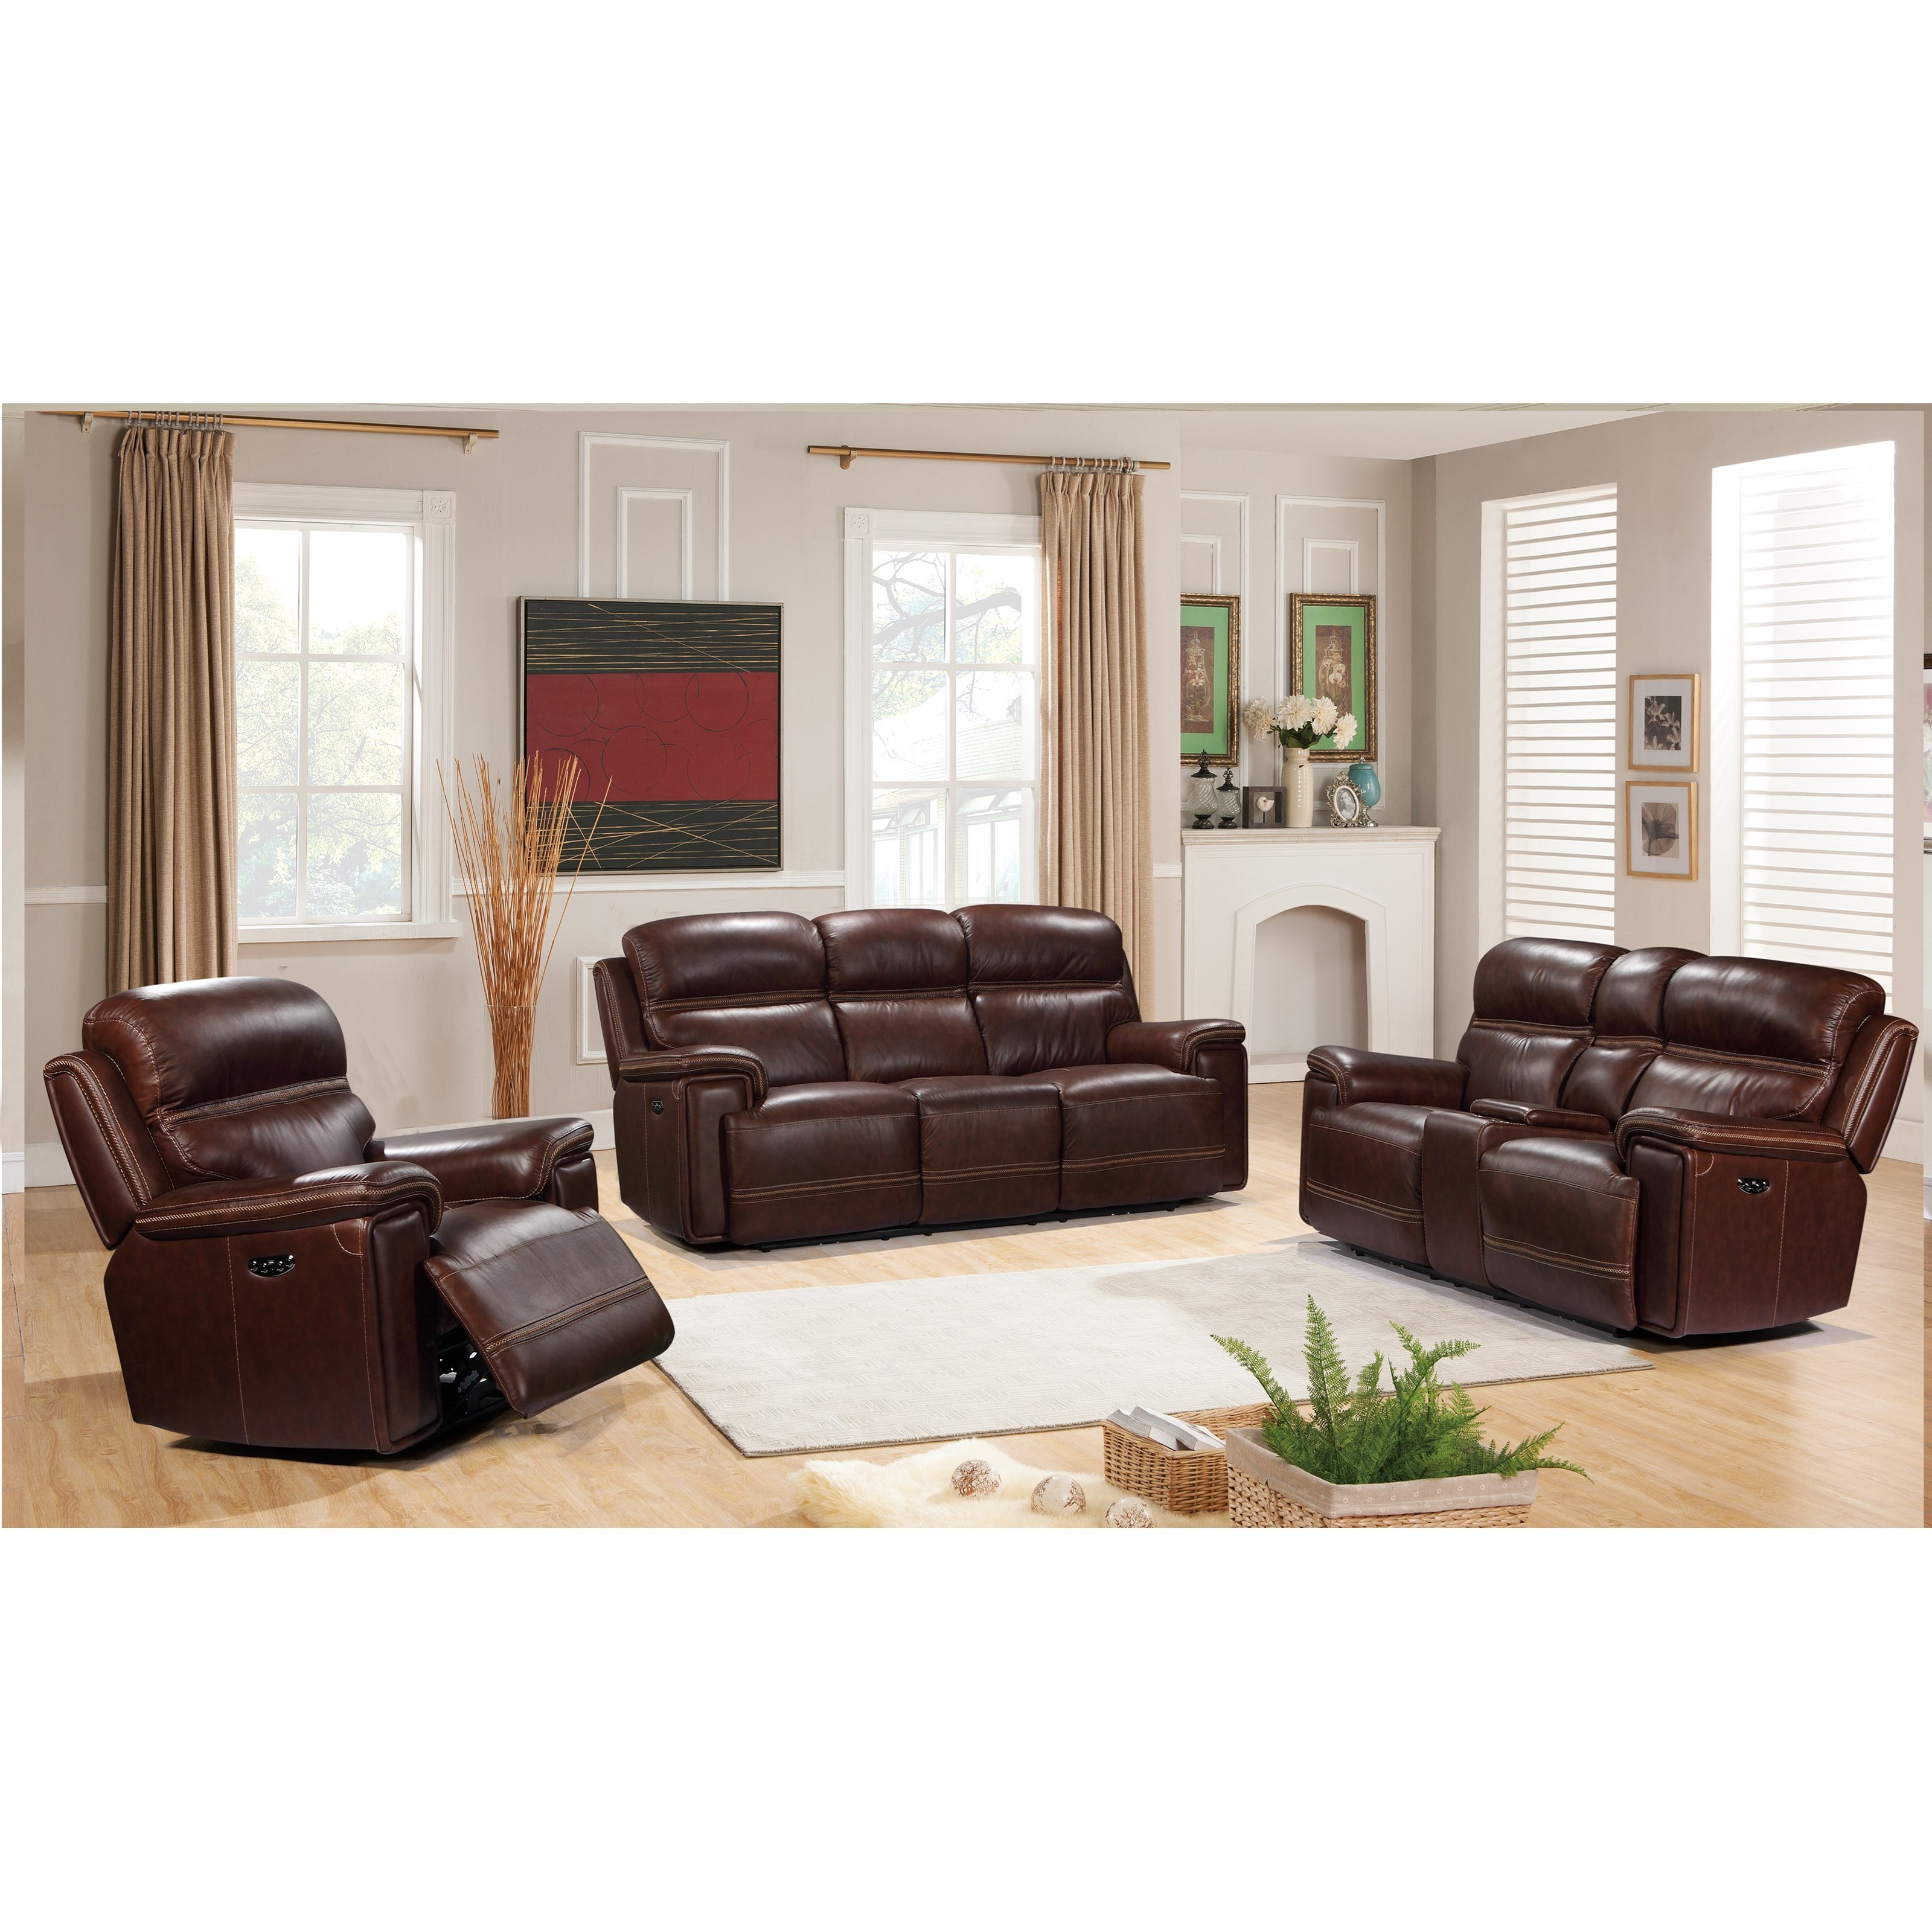 Fresno Power Reclining Living Room Group  by Benini Leather at Bennett's Furniture and Mattresses